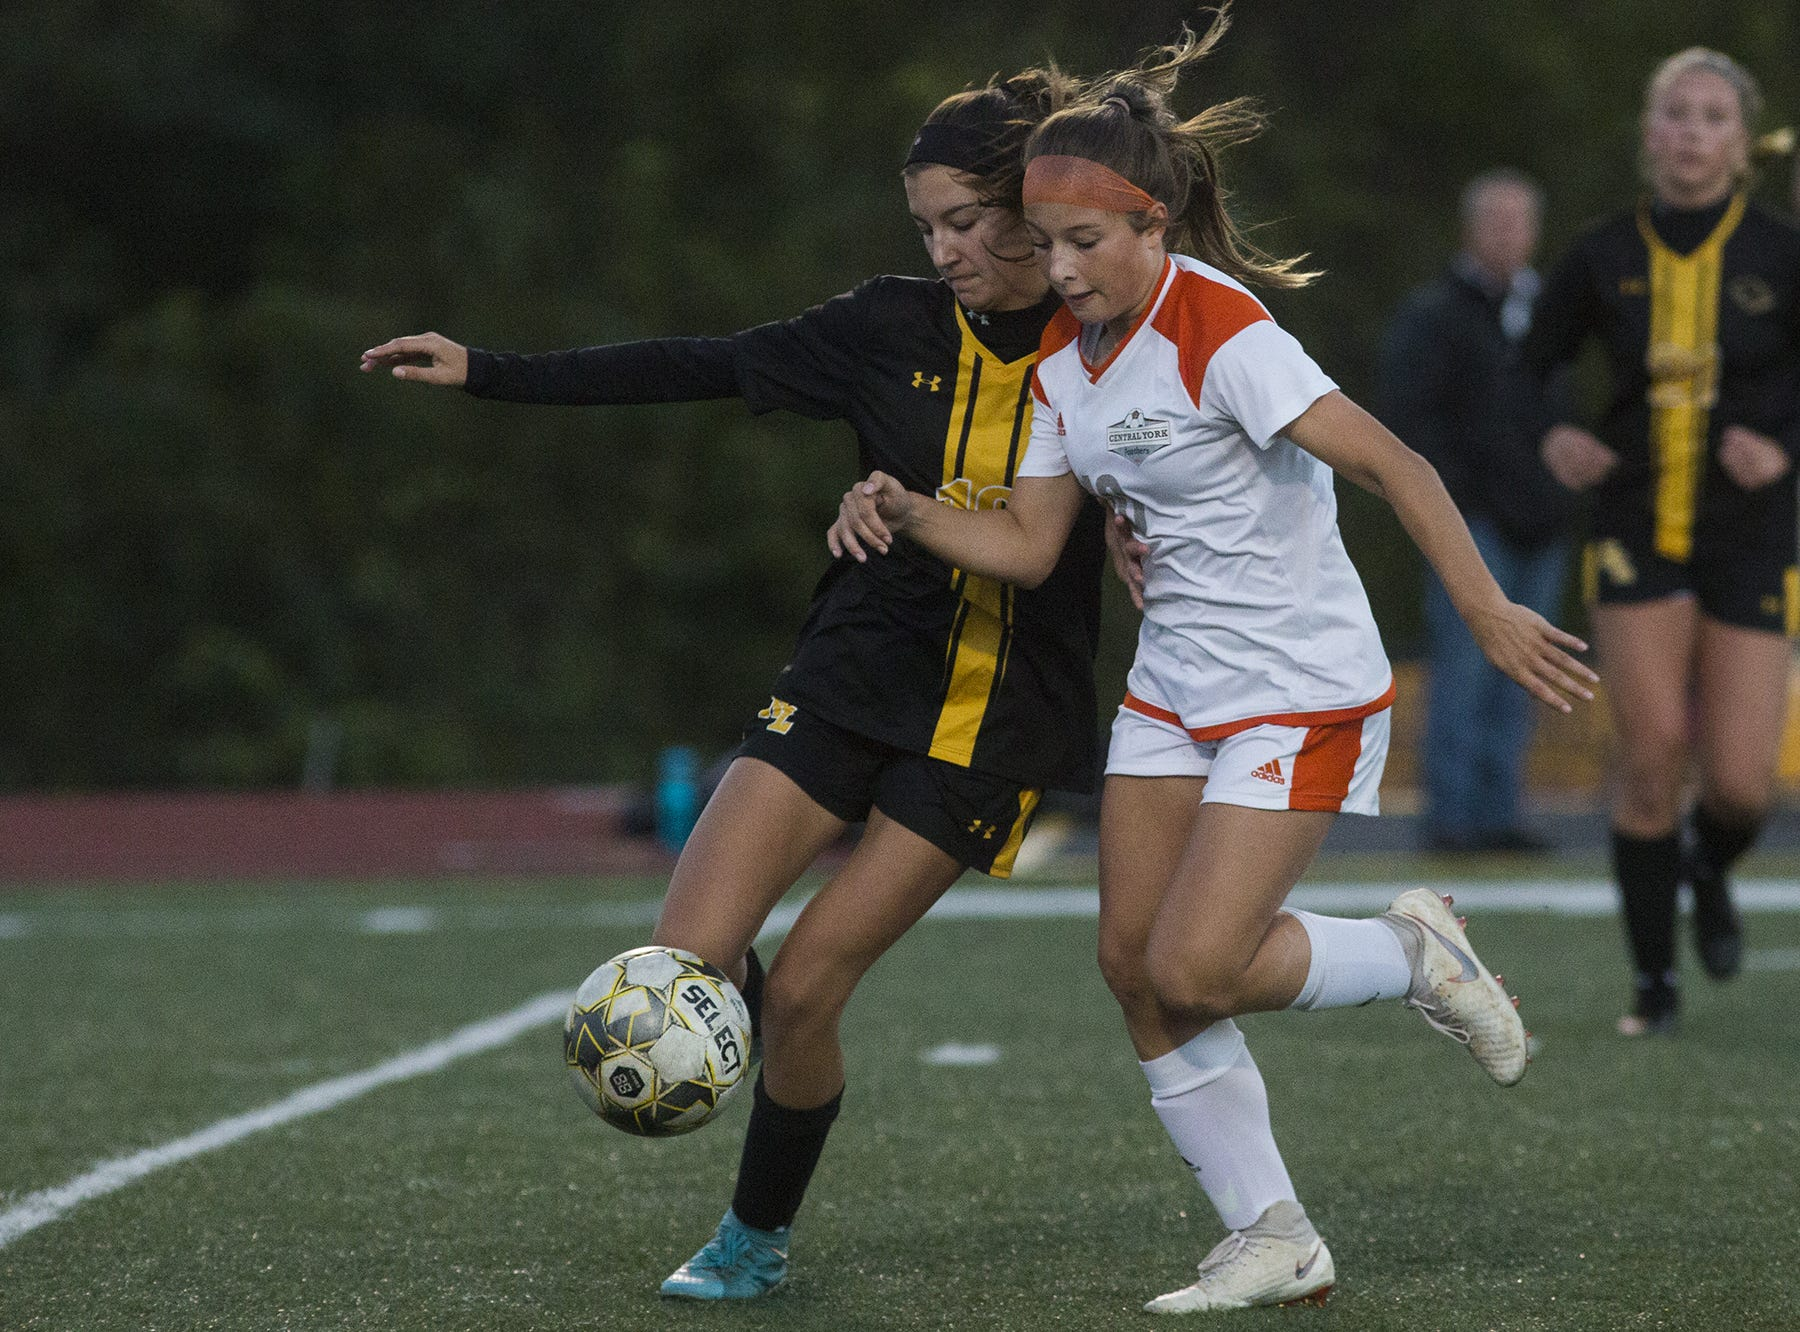 Red Lion's Brooke Wentz, left, and Central York's Ava Myers compete for the ball. Central York defeats Red Lion 1-0 in the YAIAA girls' soccer championship game at Northeastern High School in Manchester, Saturday, October 20, 2018.